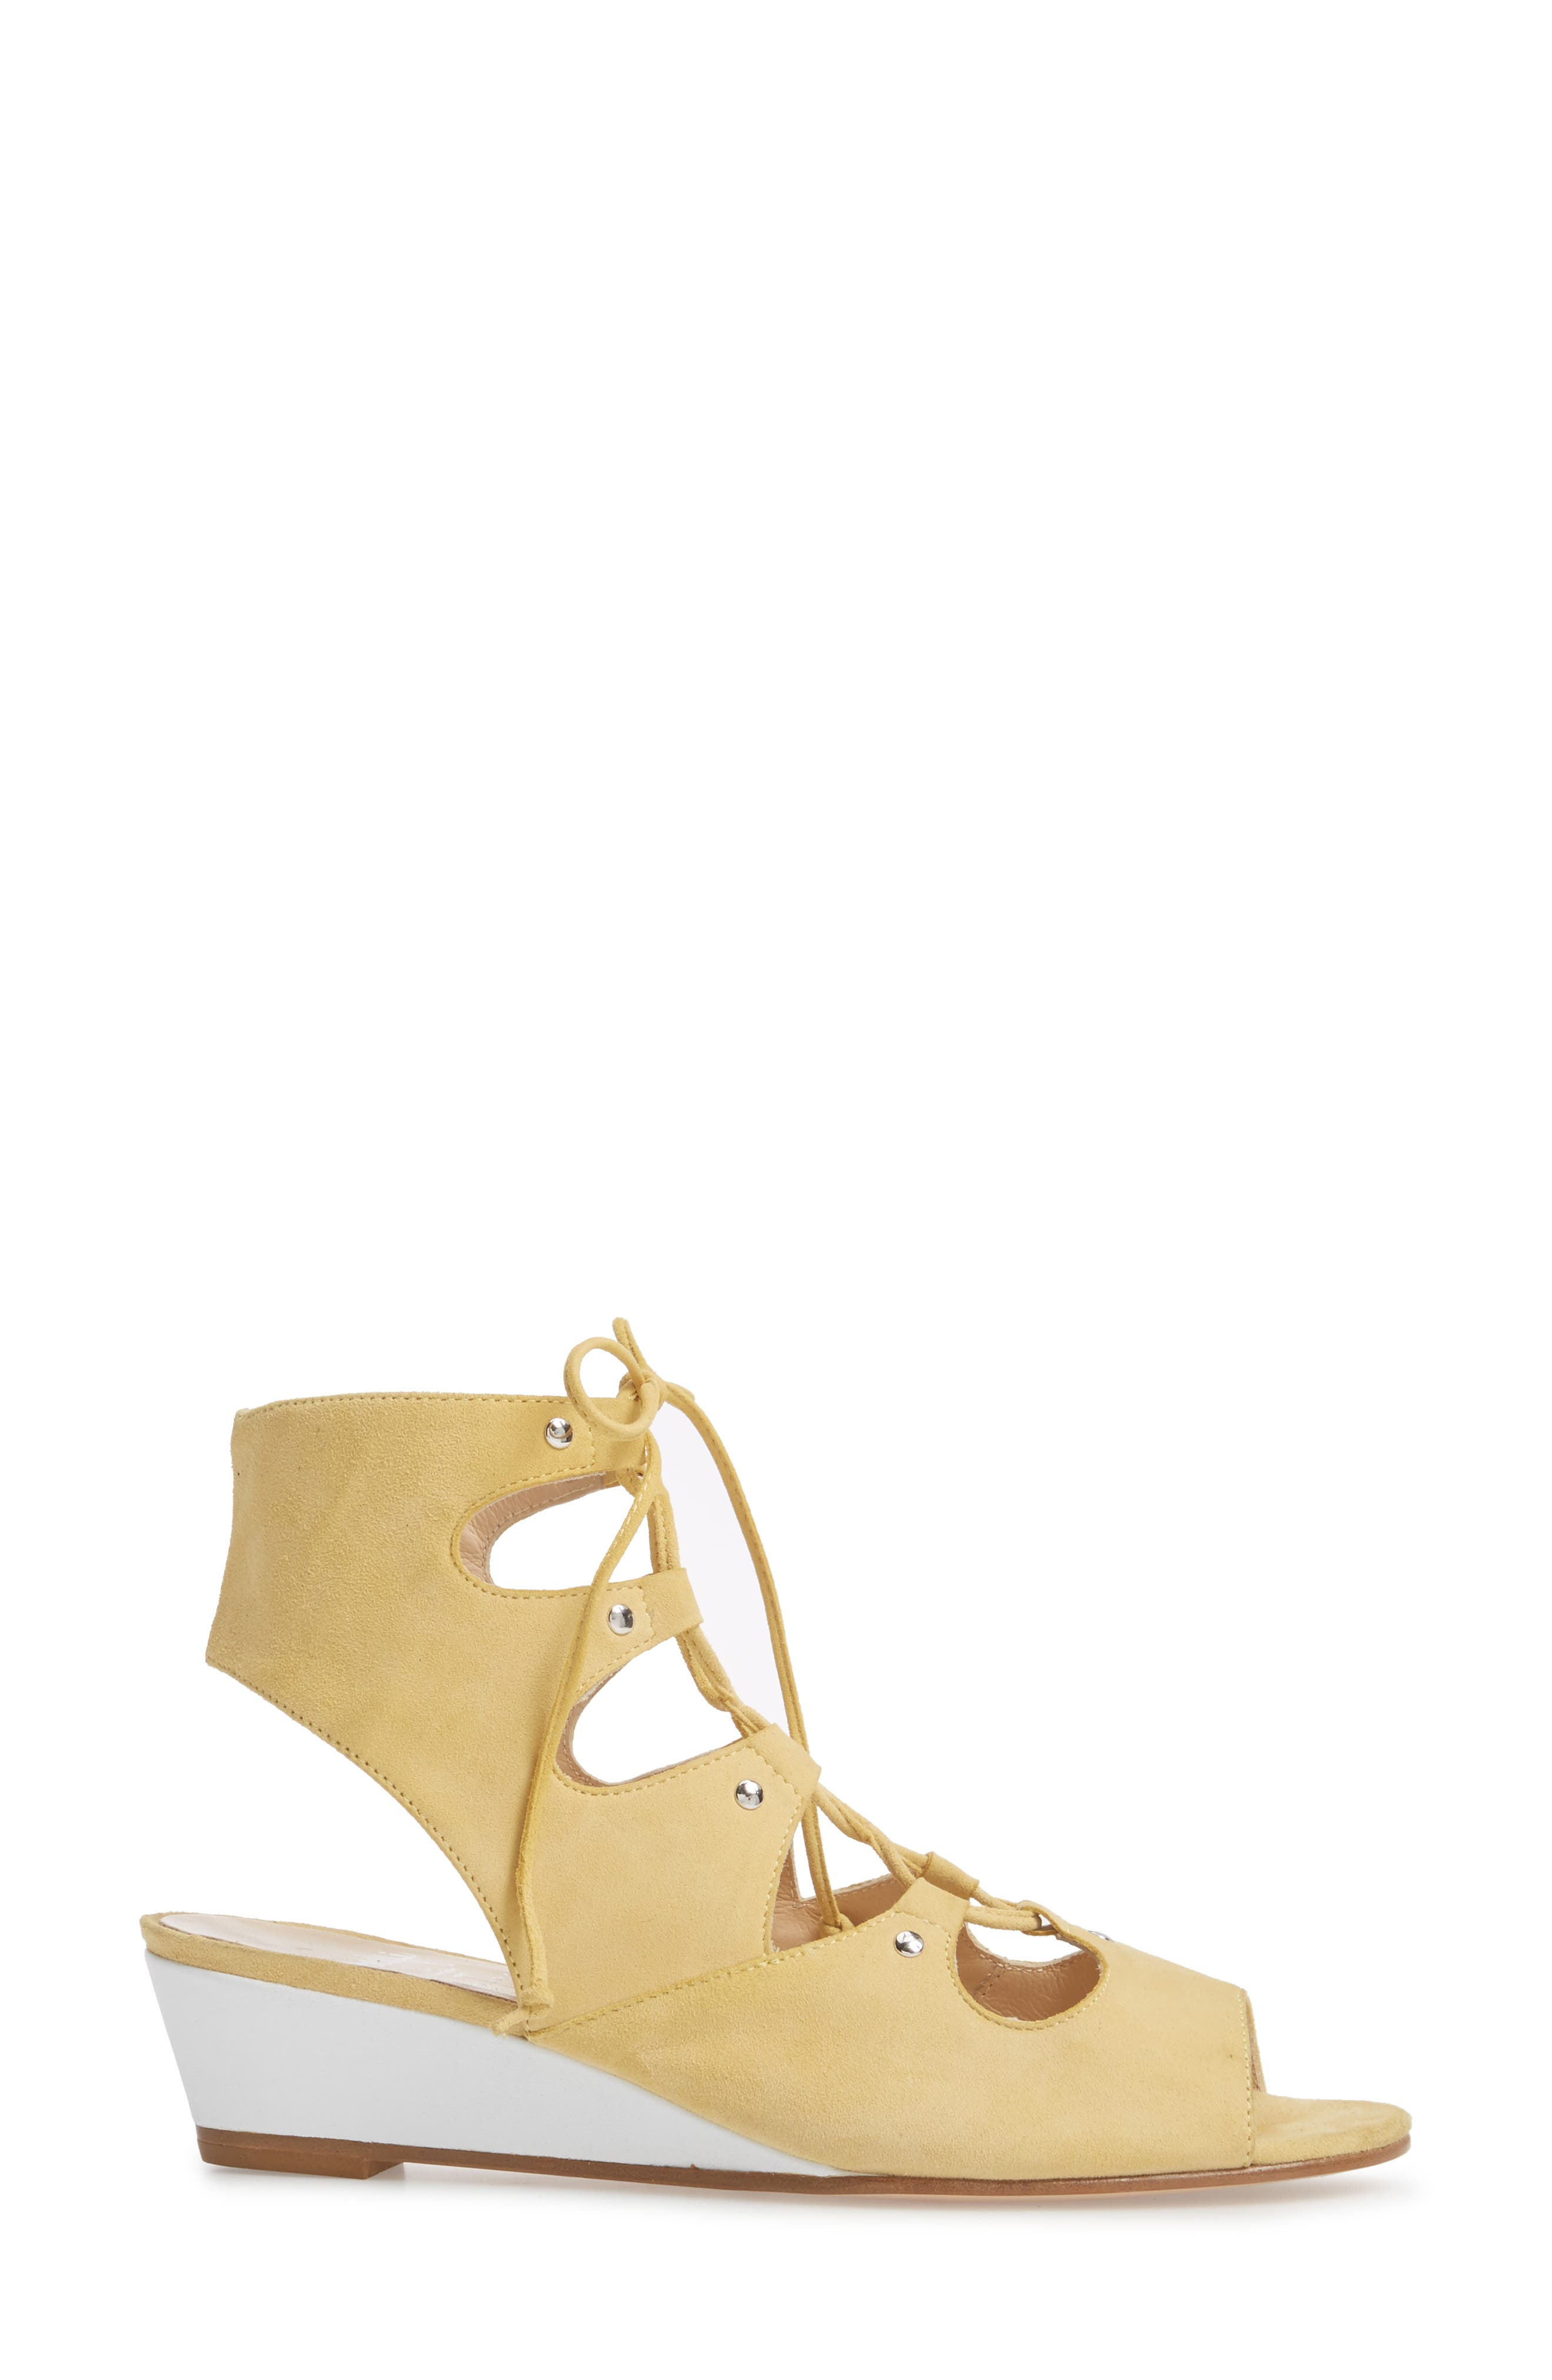 Morata Ghillie Cage Sandal,                             Alternate thumbnail 3, color,                             Mango/ Beige Suede